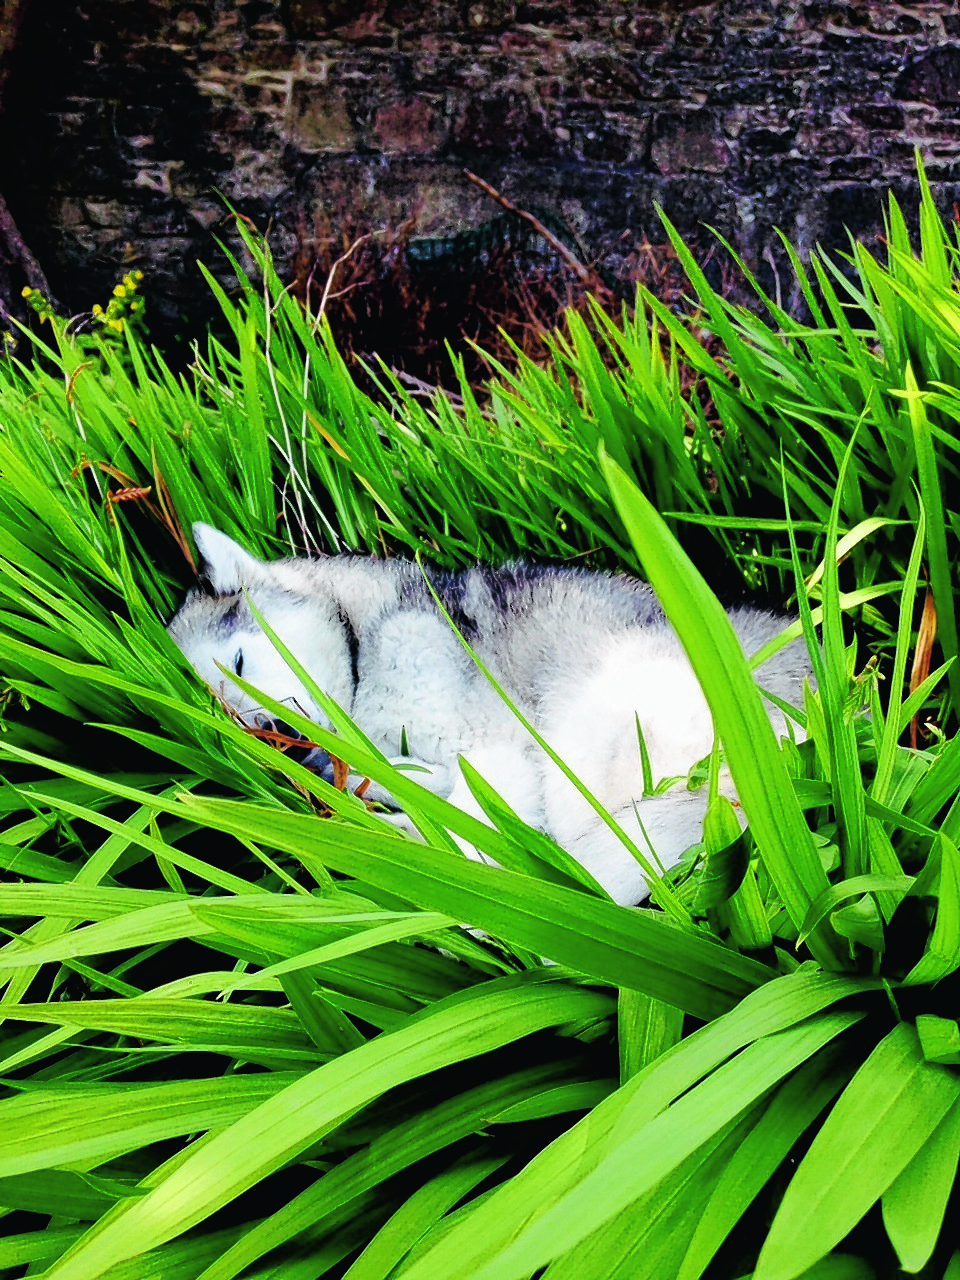 Here is Alaskan Malamute Voe in her favourite snoozing spot. She lives with the Murray family in Lerwick